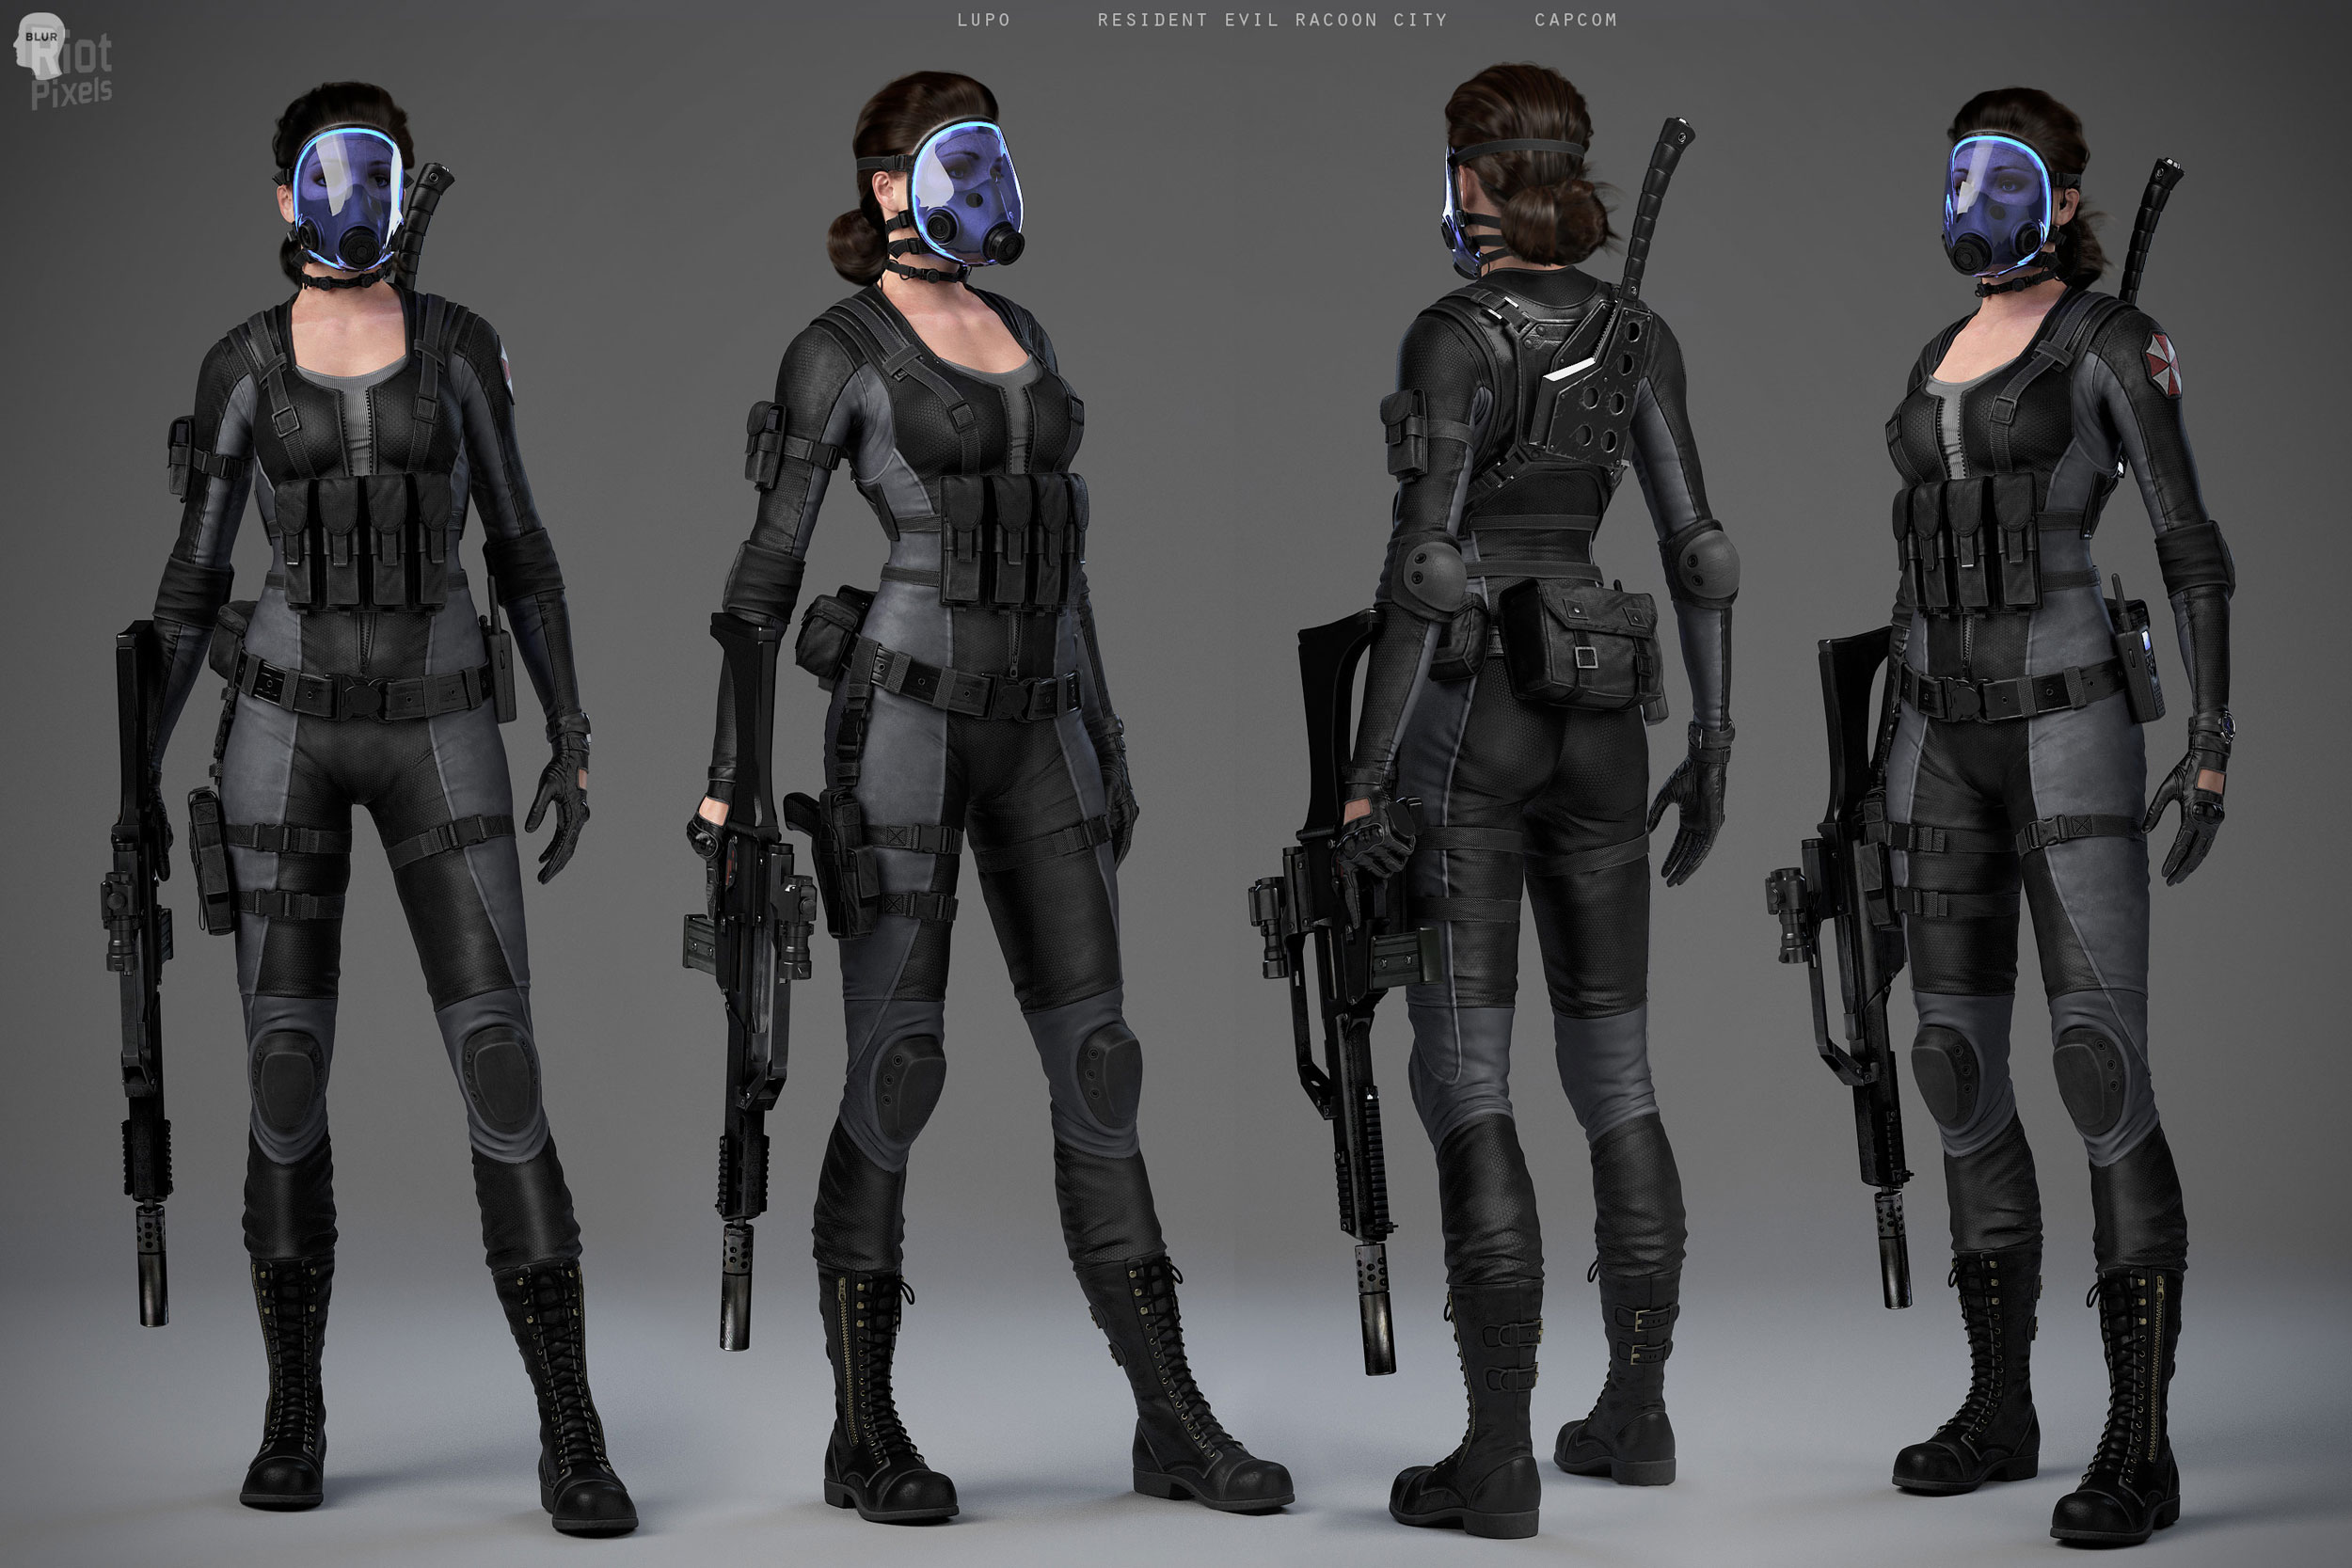 Resident evil operation raccoon city porn lupo  smut gallery